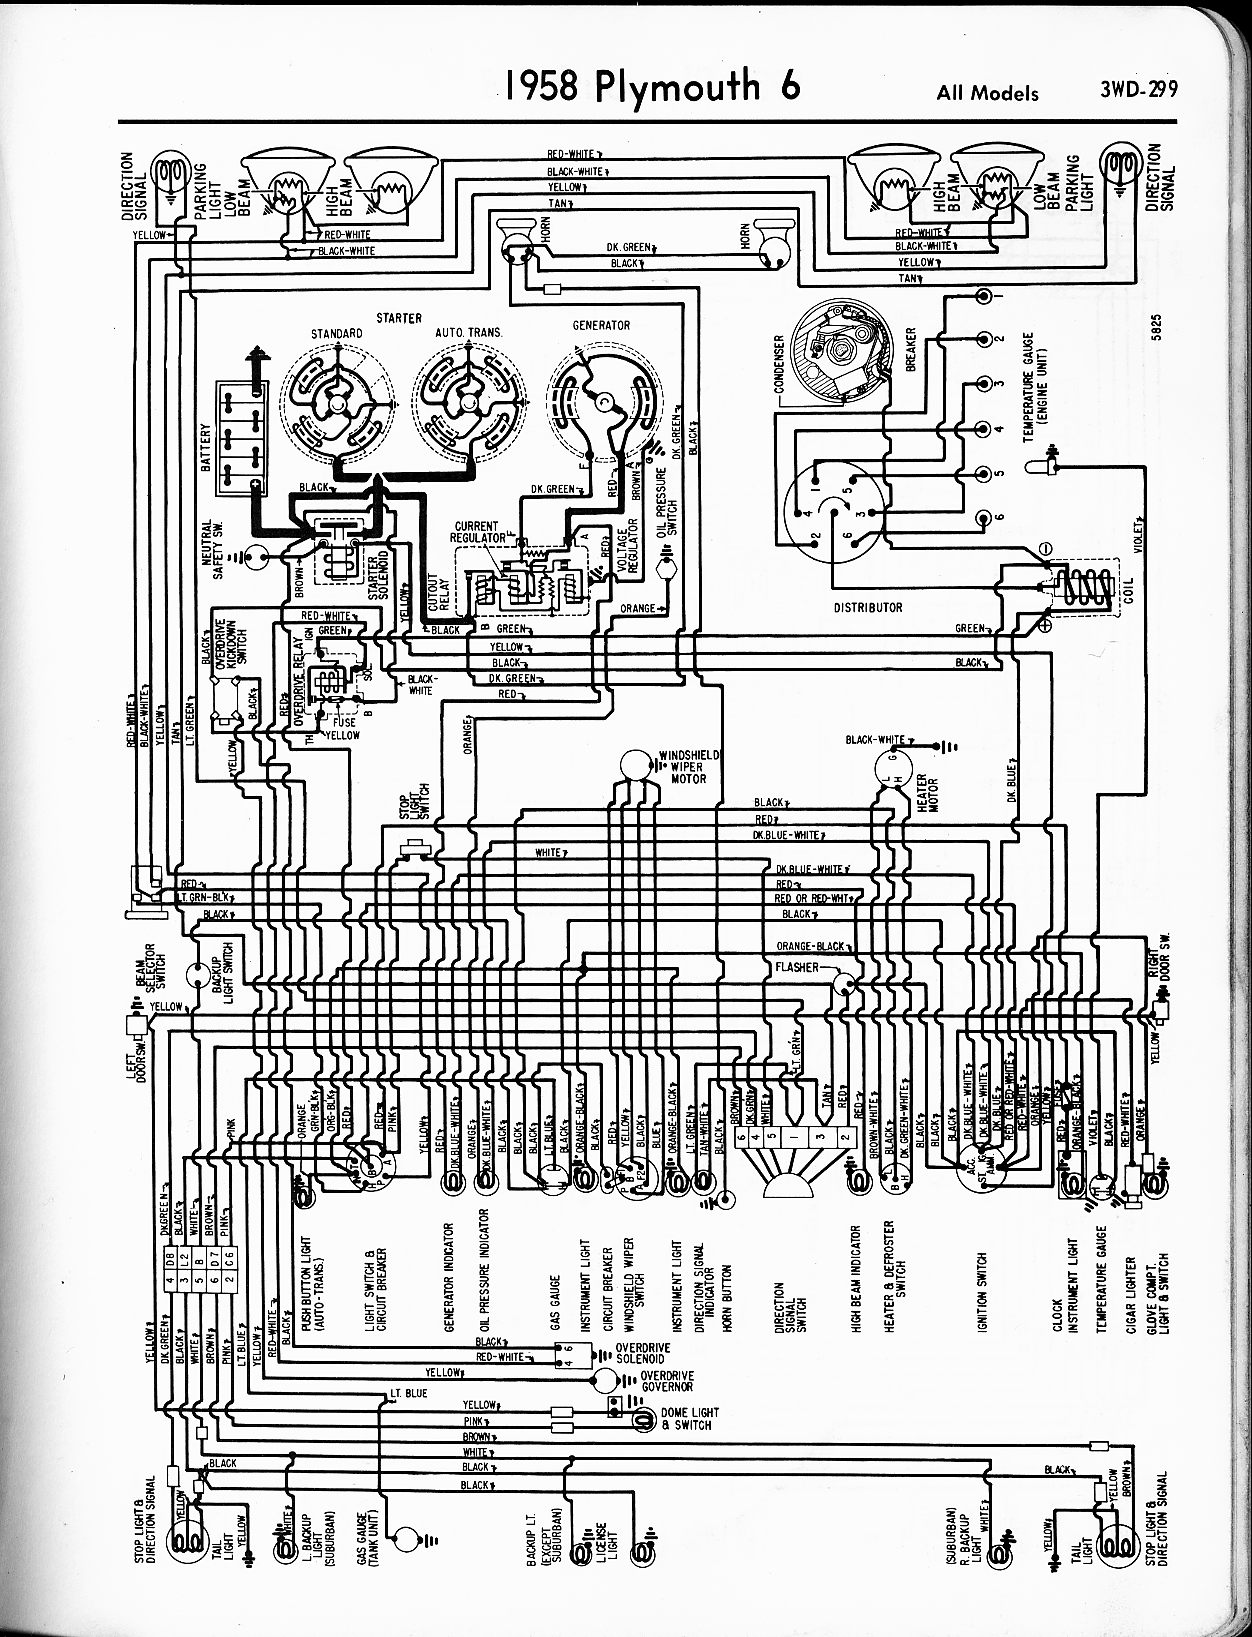 1957 plymouth wiring harness schematics wiring diagrams u2022 rh orwellvets co